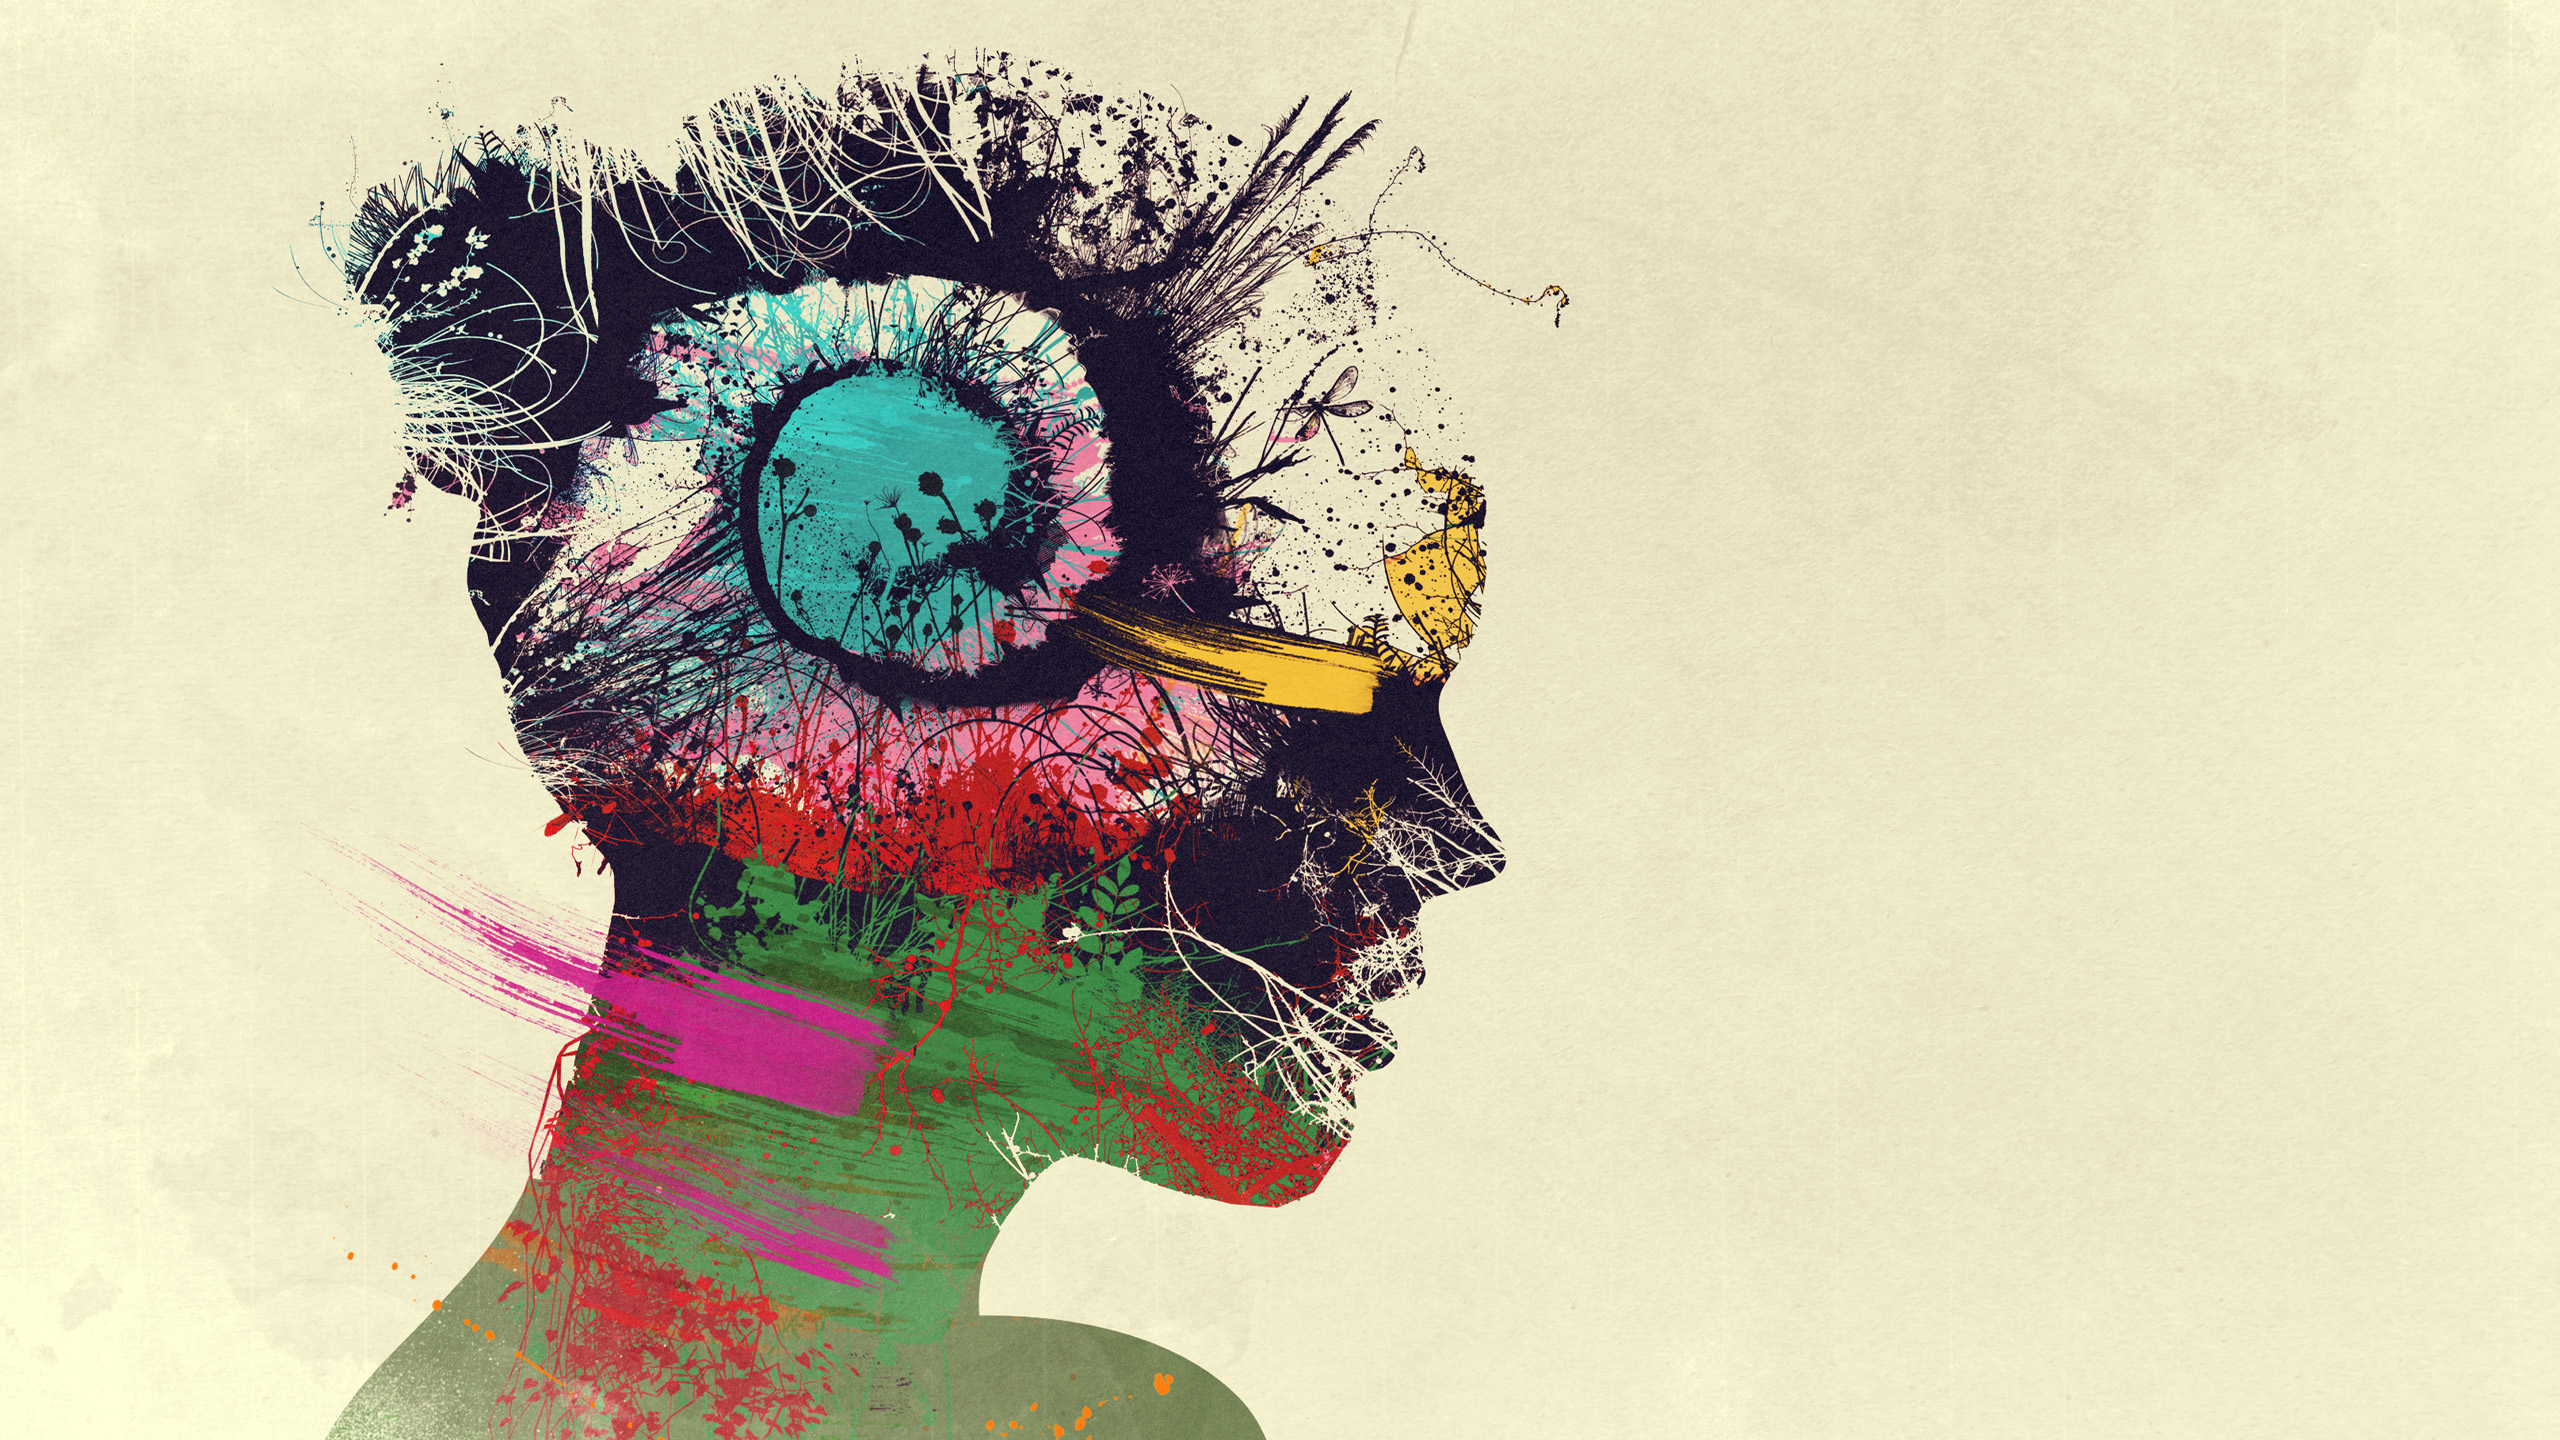 Psychedelic Hd Wallpaper Background Image 2560x1440 Id